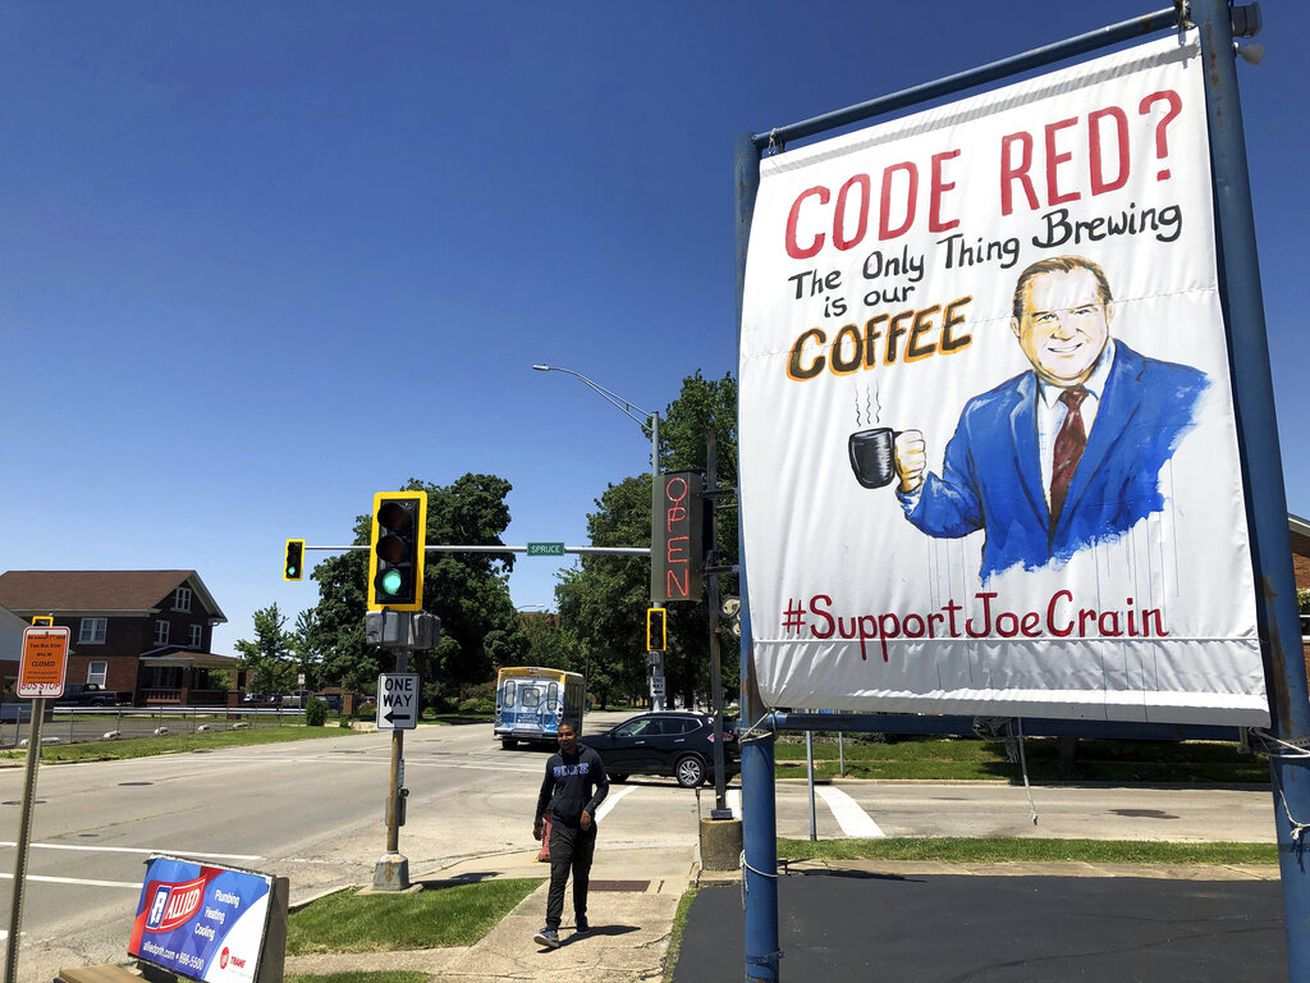 A sign supporting Springfield meteorologist Joe Crain appears at Grab a Java, a drive-through coffee joint, on Monday, June 10, 2019 in Springfield, Ill. The central Illinois city is defending a popular meteorologist who has been absent from local television newscasts since he criticized a corporate weather-alert brand.